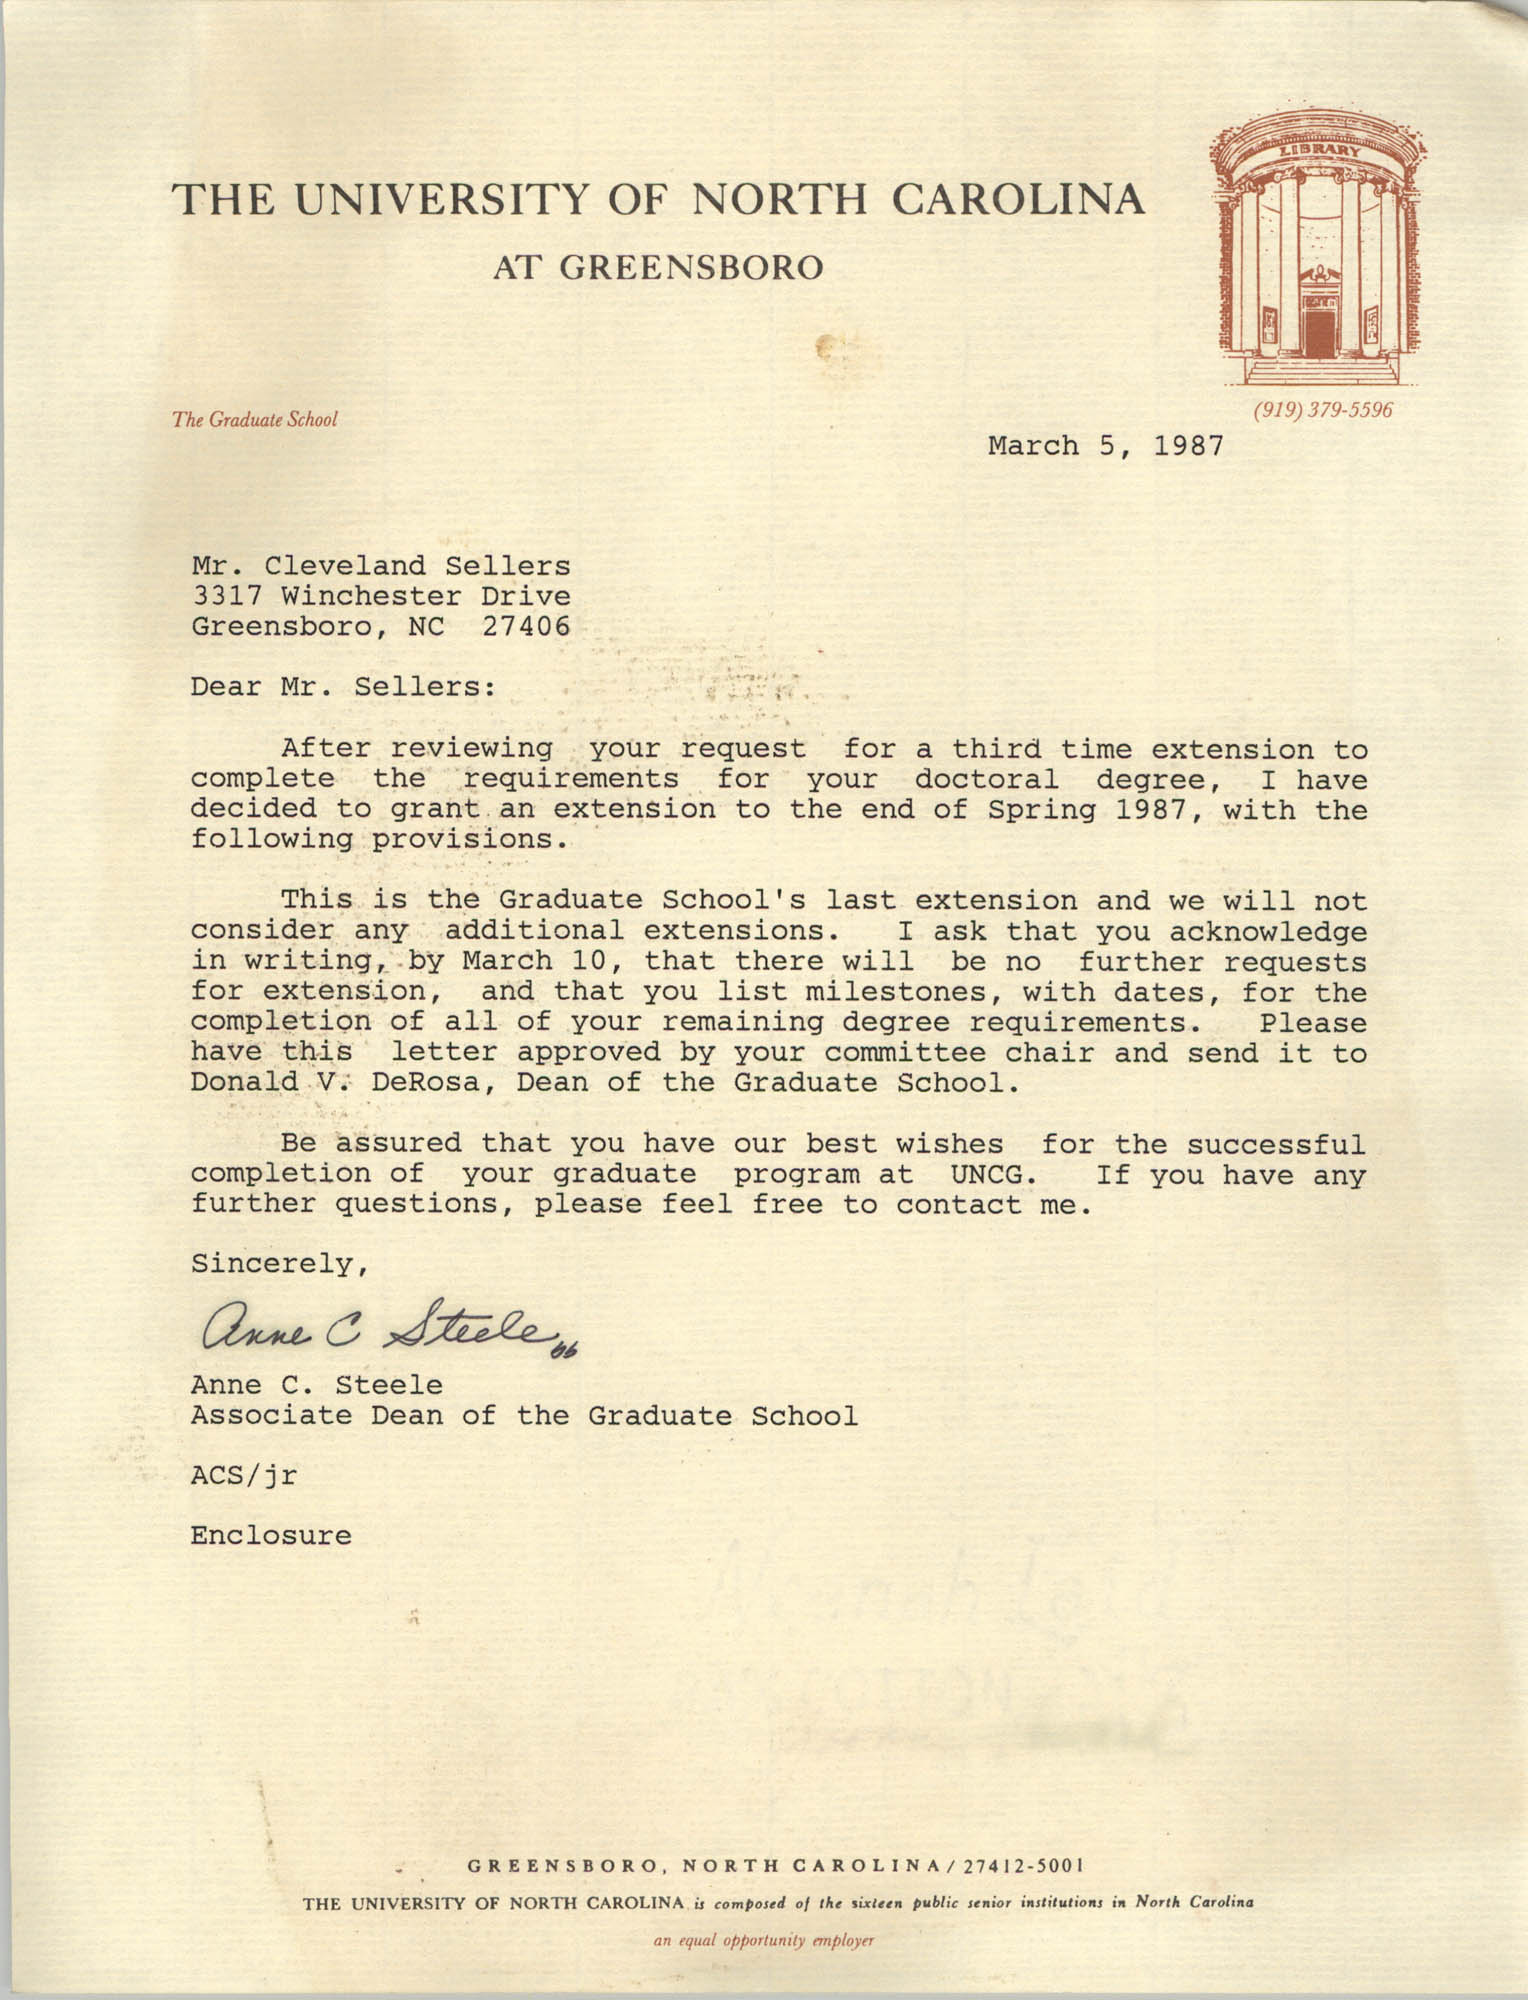 Letter from Anne C. Steele to Cleveland Sellers, March 5, 1987